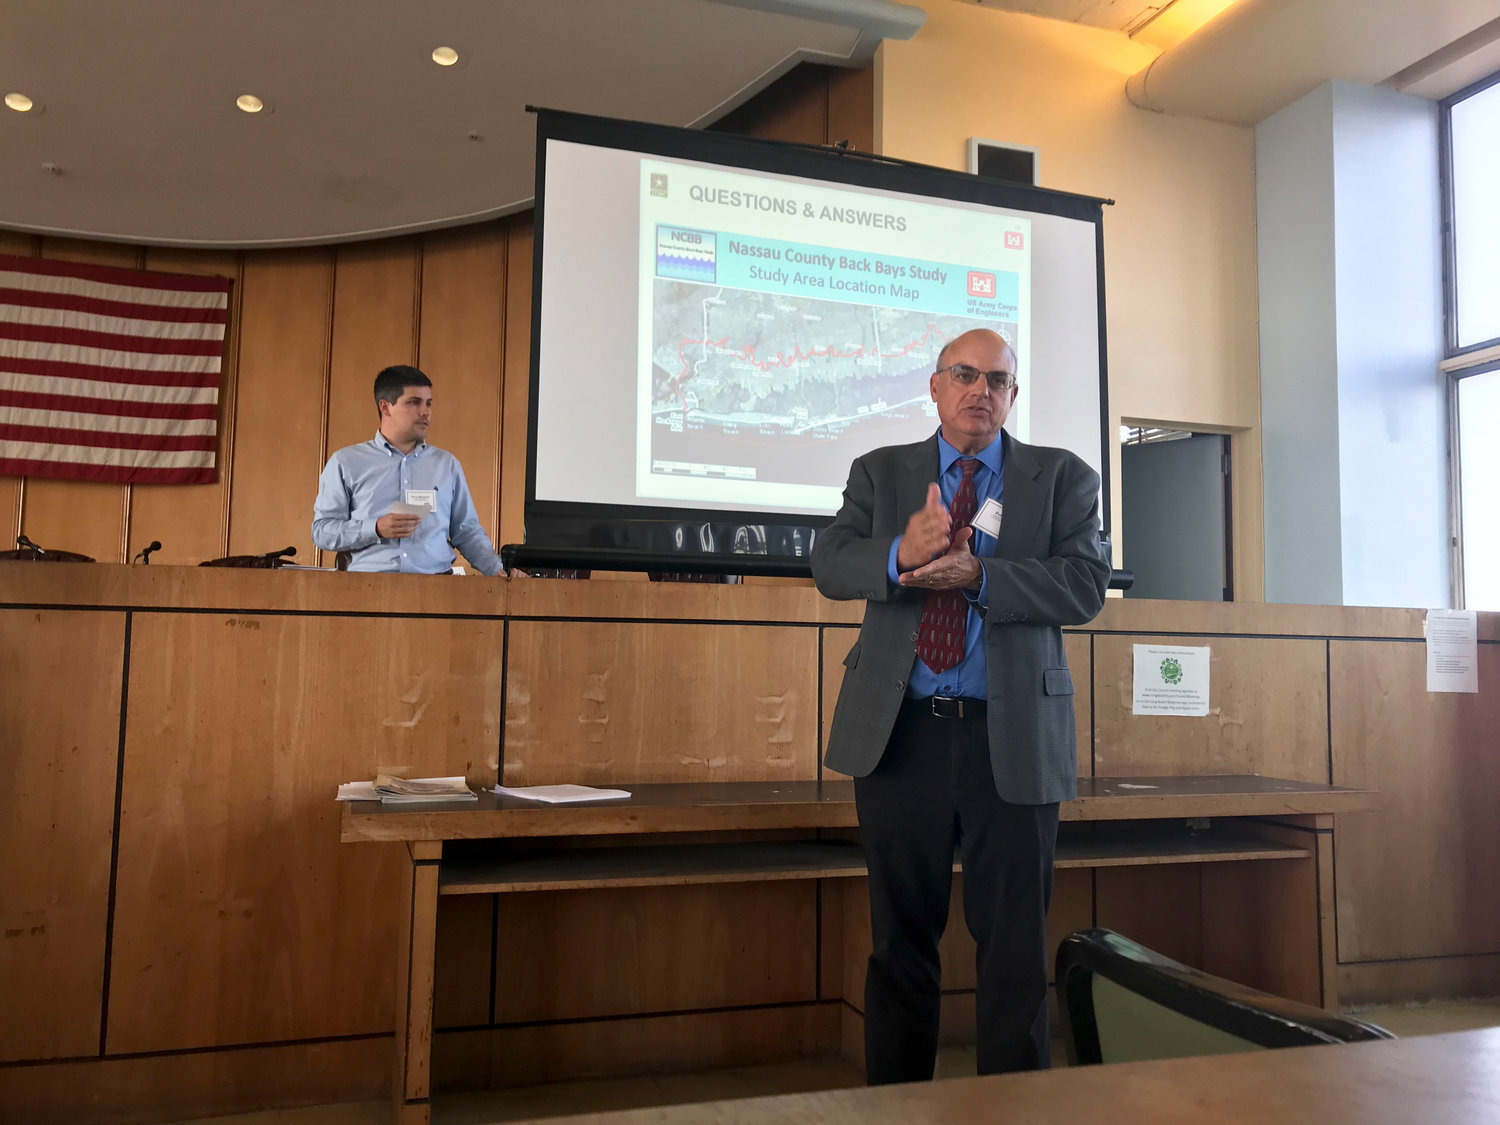 Peter Blum, chief of the Army Corps' planning division, answered residents' questions at a public meeting on June 27.